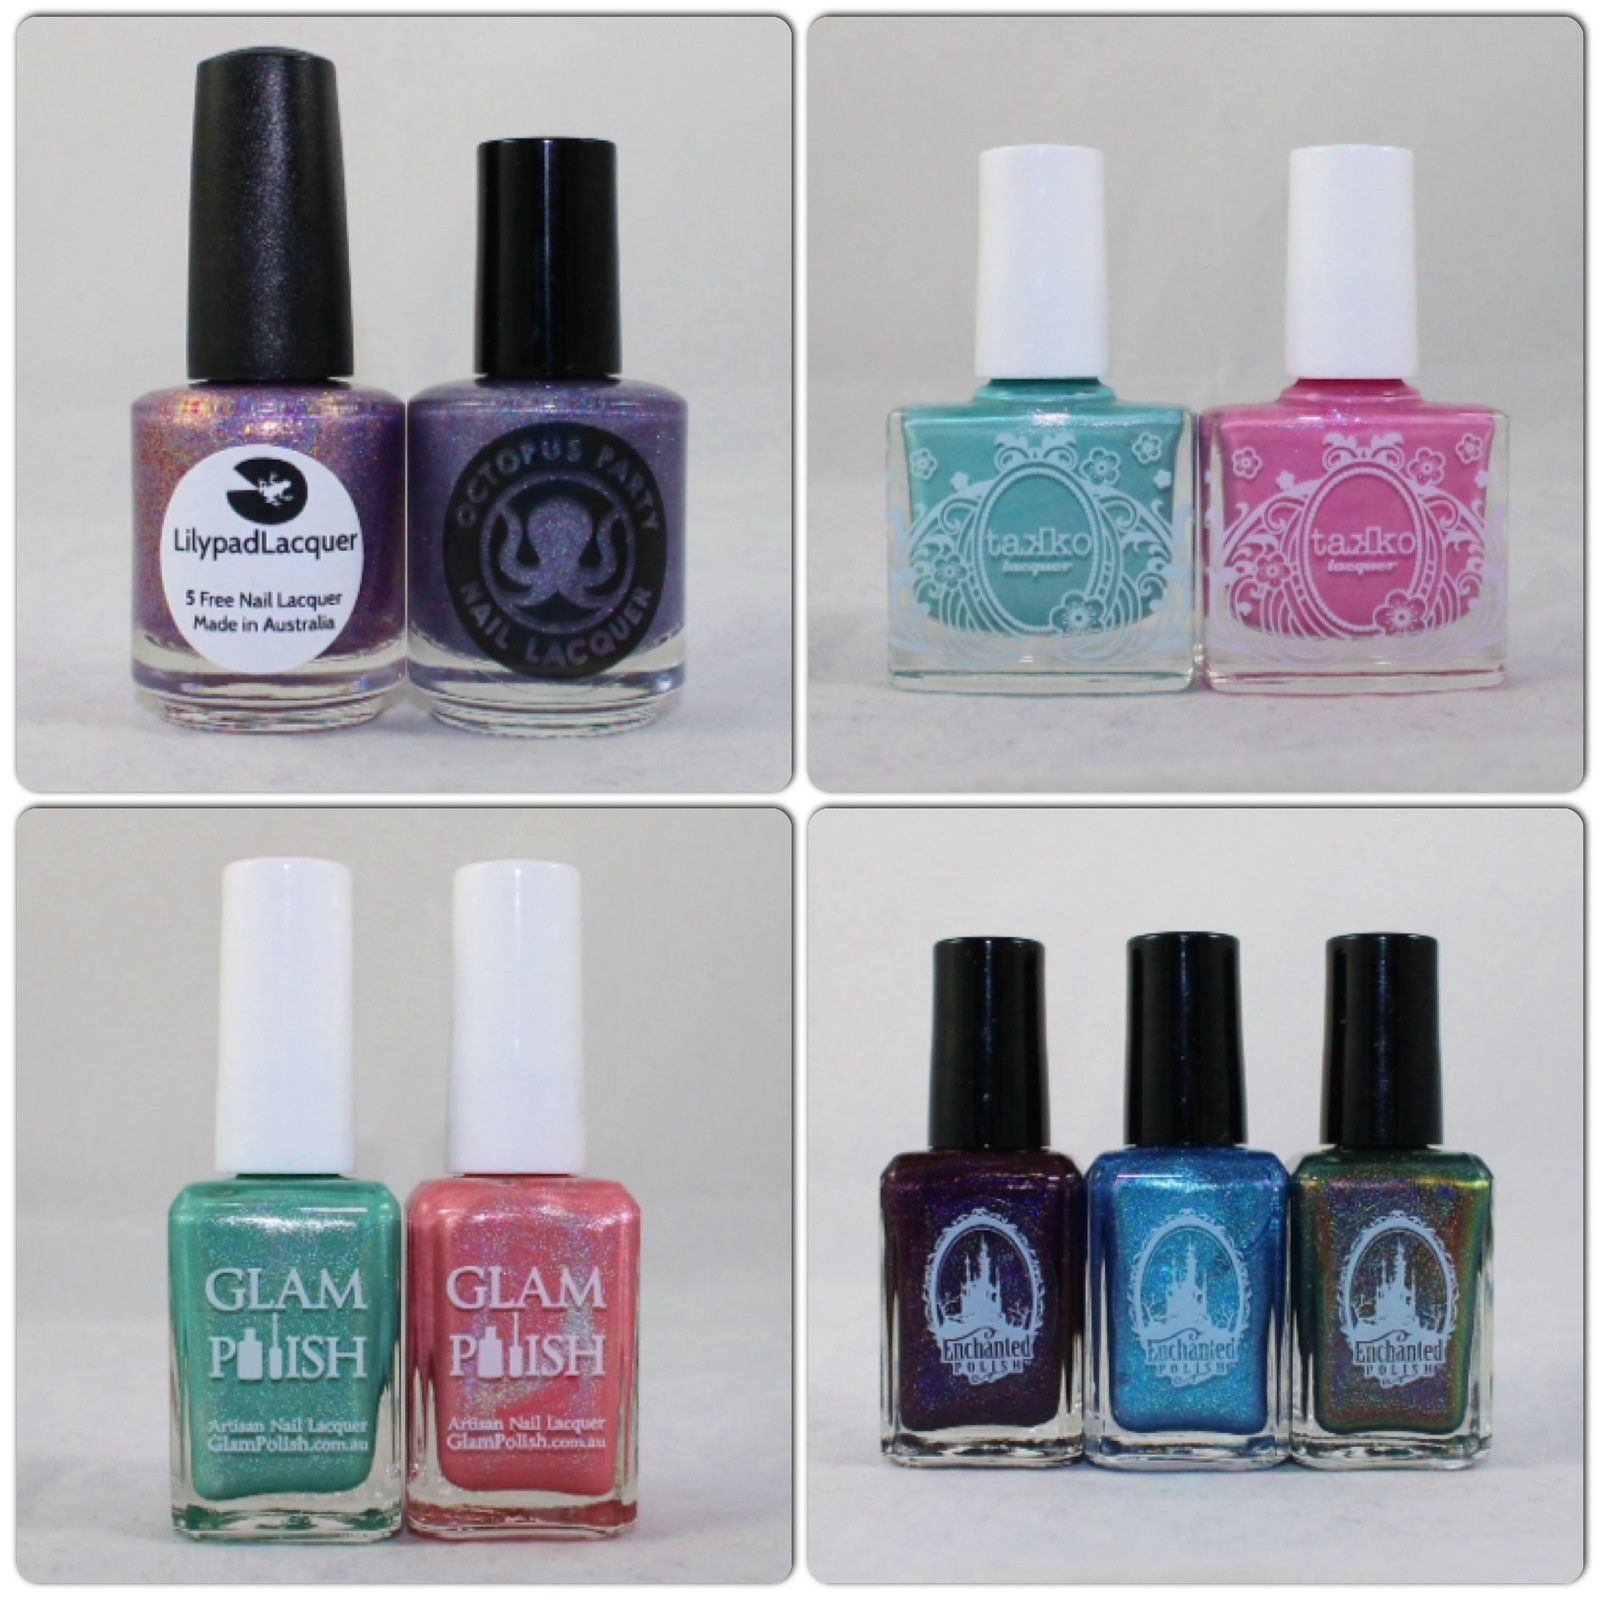 Lilypad Lacquer Scattering Sunlight & Octopus Party Nail Lacquer Crepuscular. Takko Lacquer Snow Bunny & Smitten Kitten. Glam Polish Arctic Freeze & Frost Flower. Enchanted Polish November 2014, December 2014 & Holiday 2014.